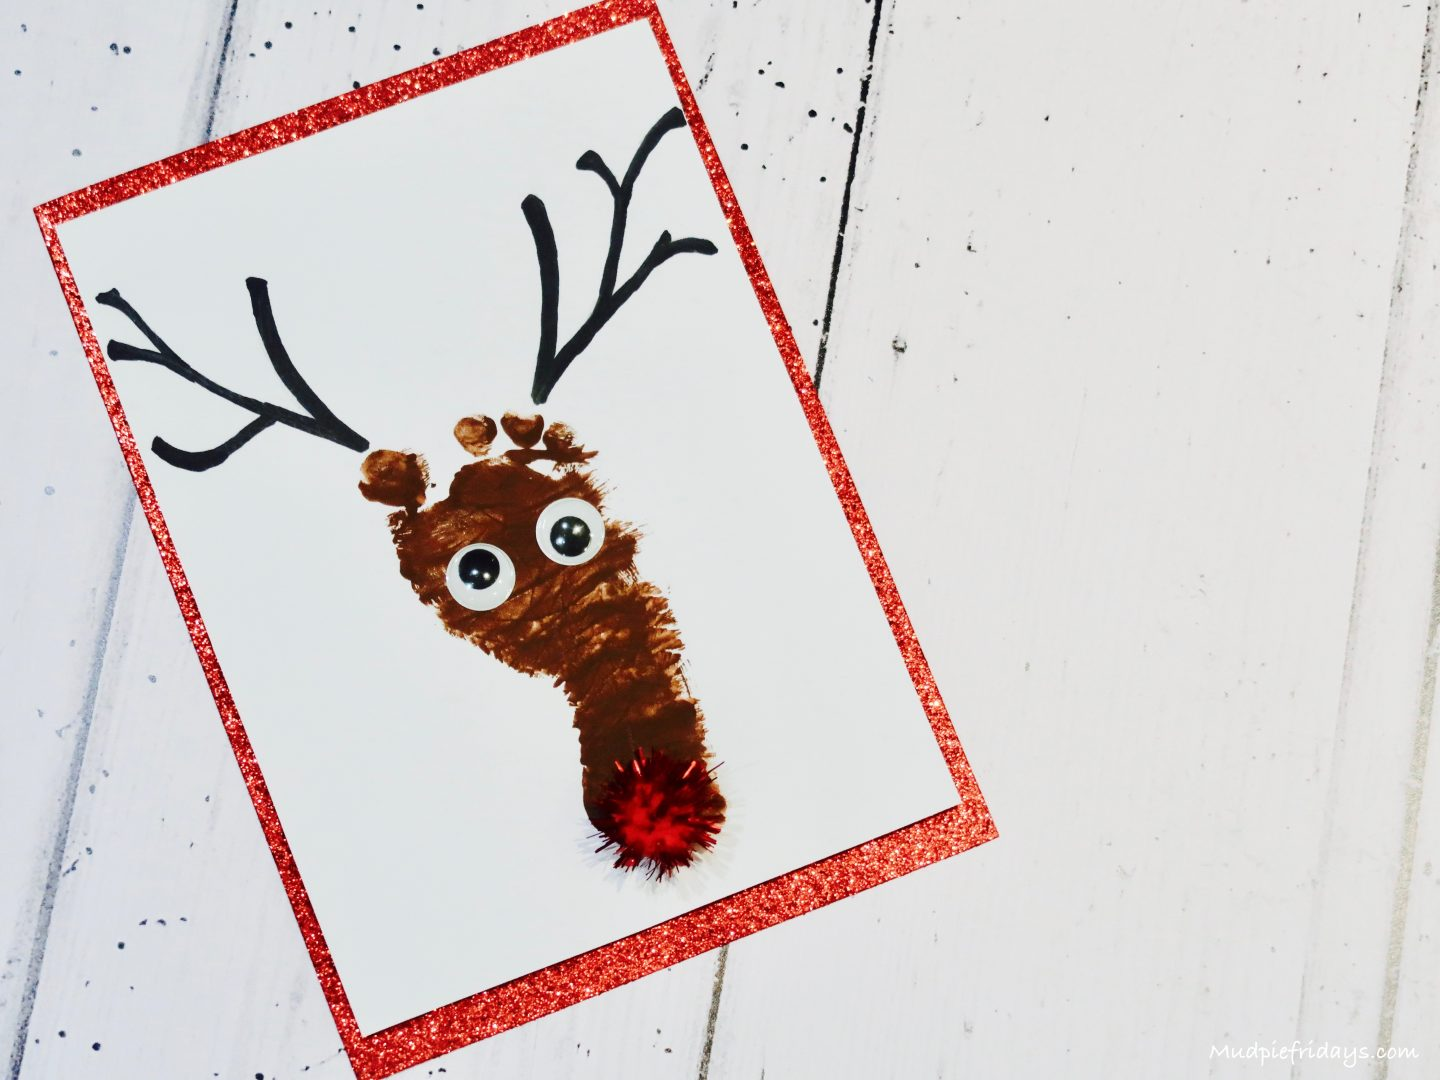 i love this craft as its so easy to do if you would like some more inspiration for some more footprint and handprint crafts then check out some of the - Footprint Christmas Crafts